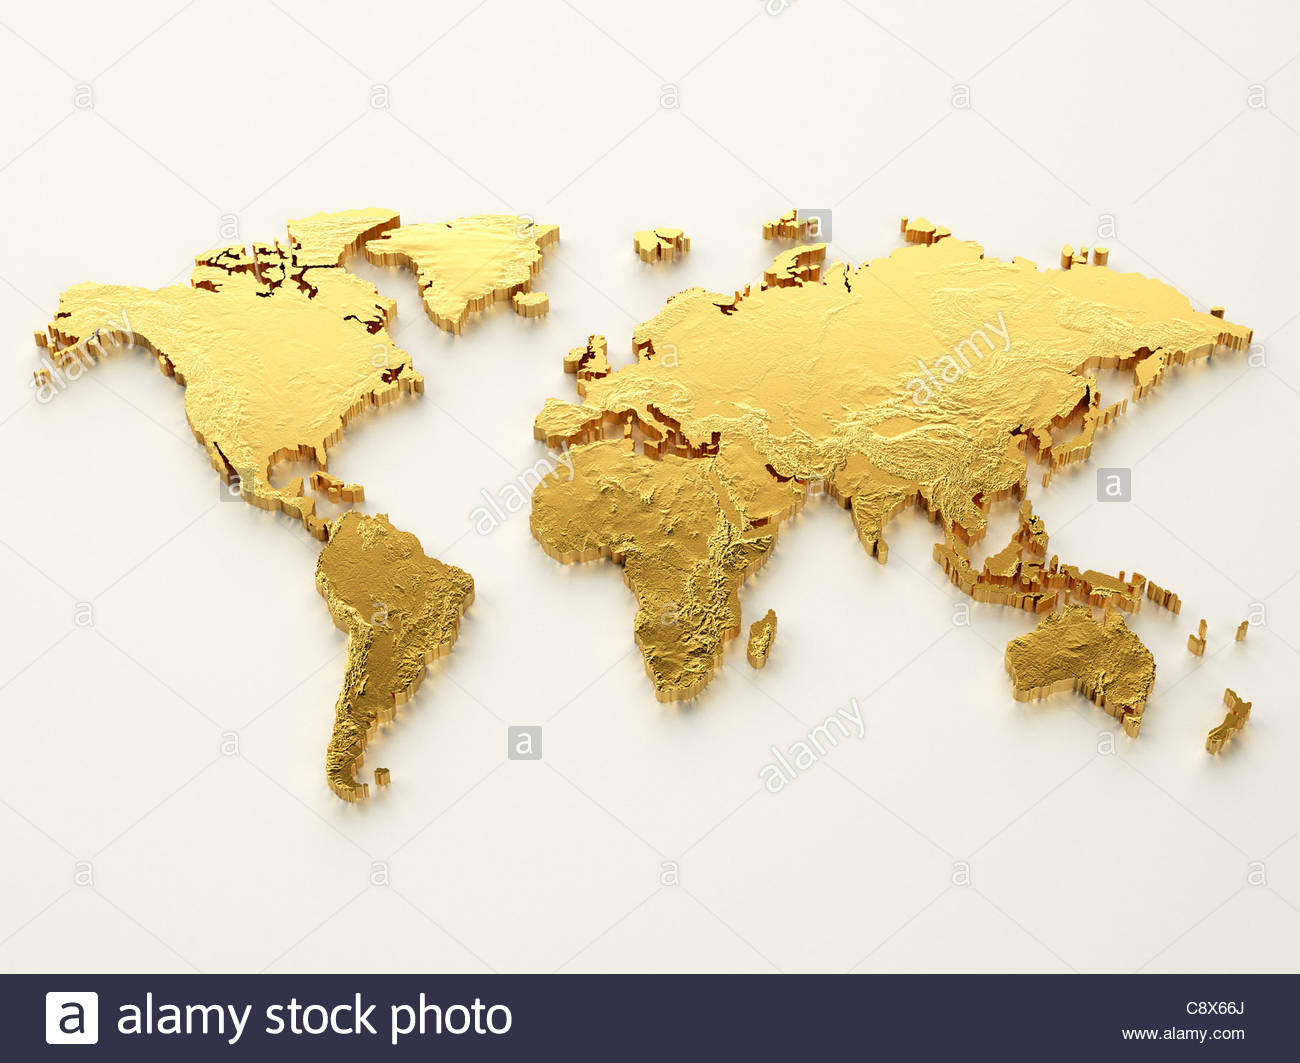 Gold world map on white background stock photo 39913626 alamy gold world map on white background gumiabroncs